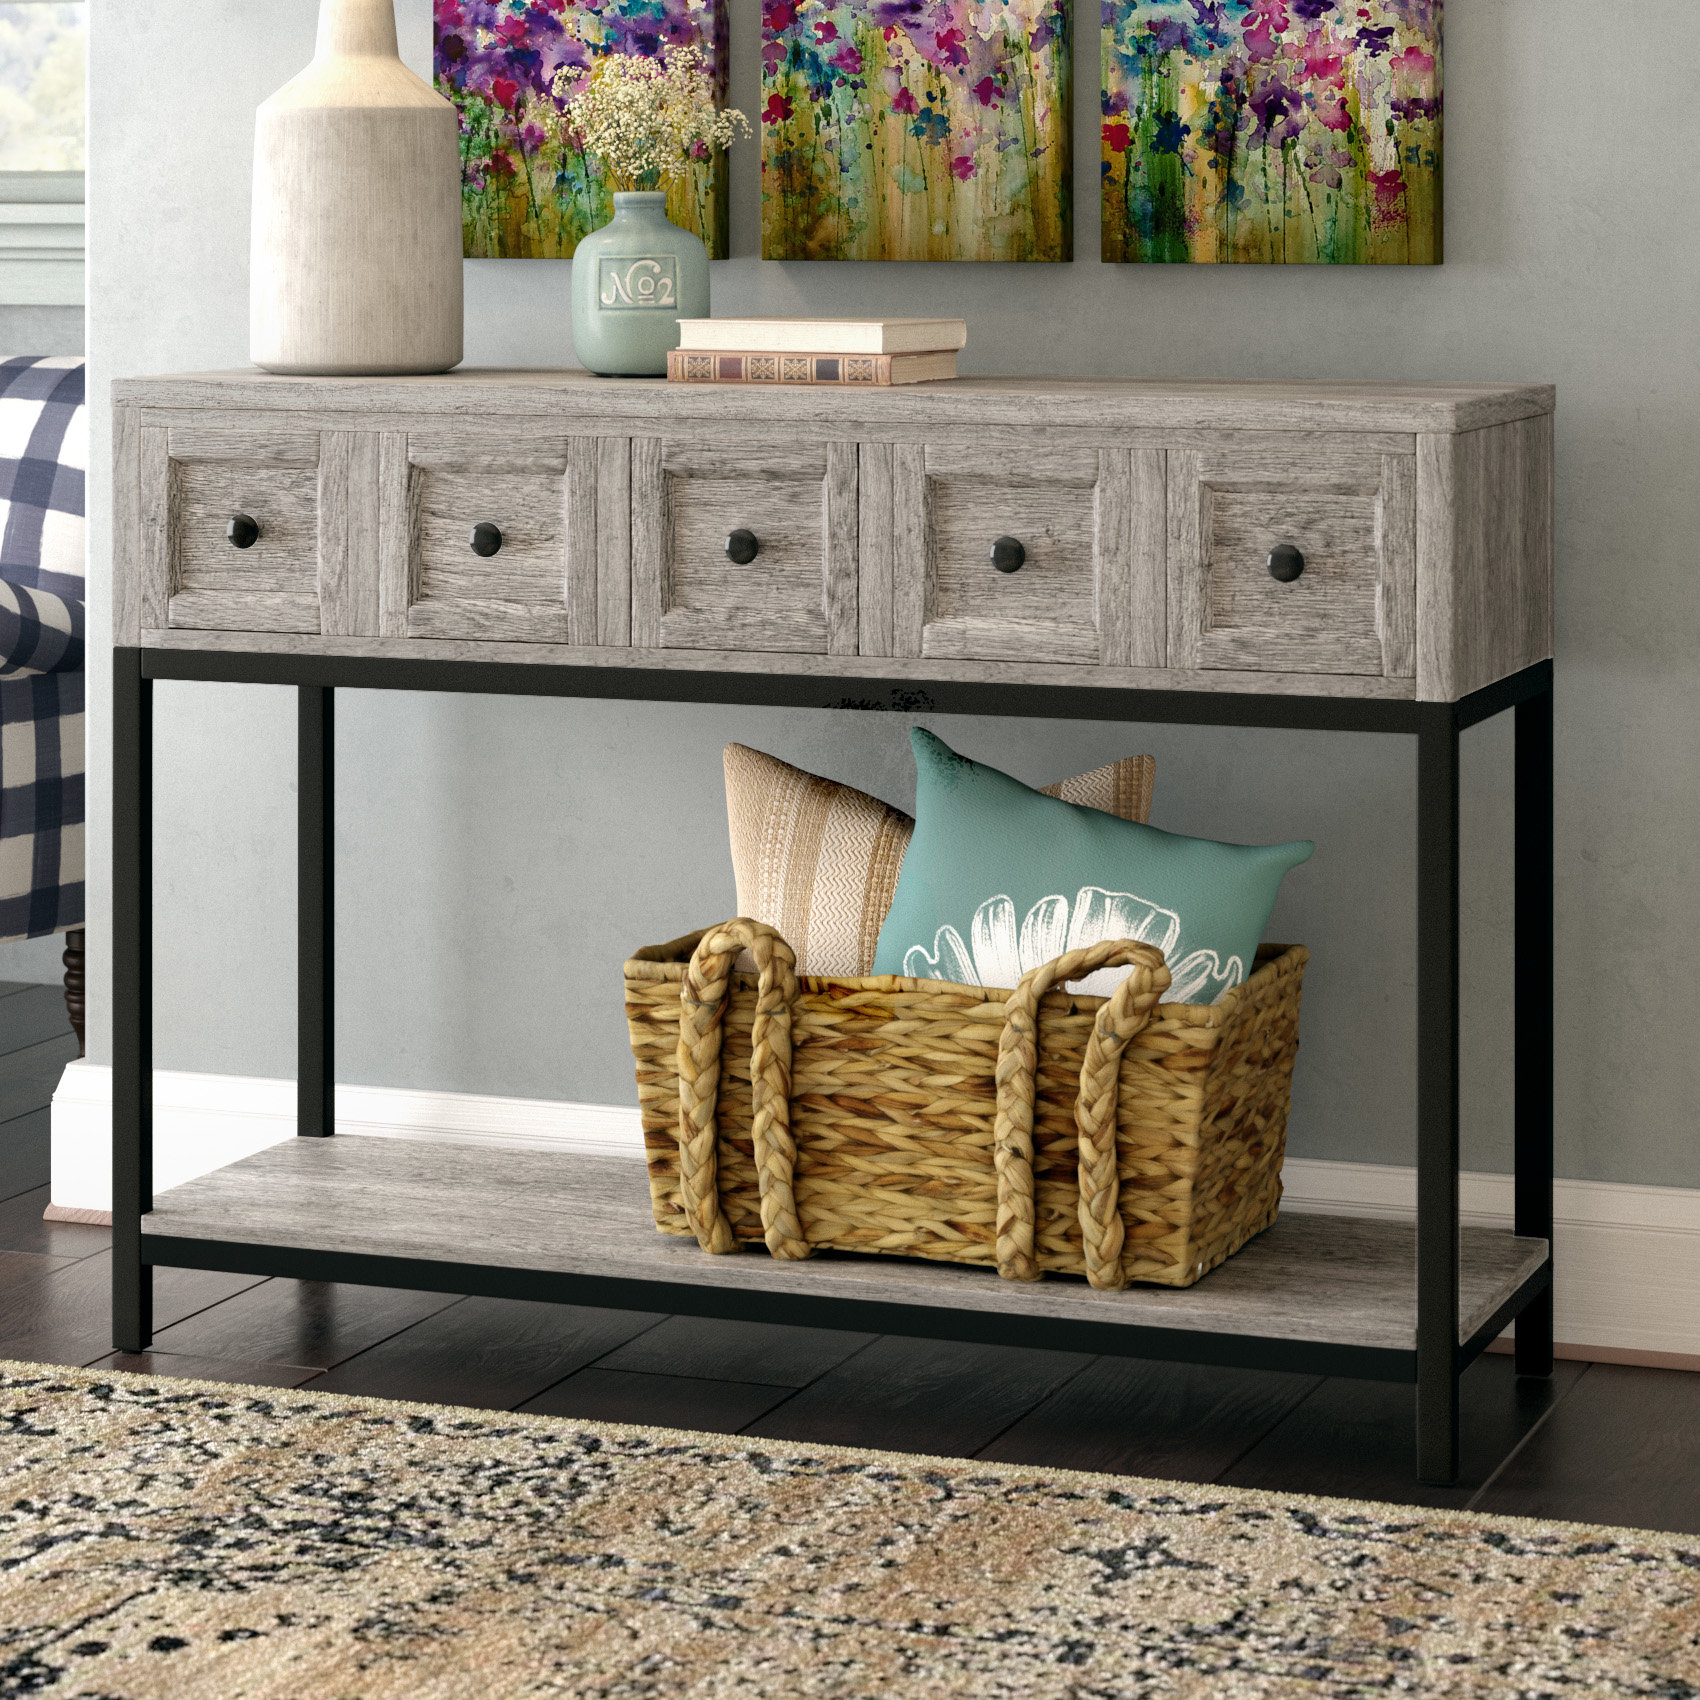 8 Inch Deep Console Table | Wayfair With Regard To Oscar 60 Inch Console Tables (View 6 of 30)